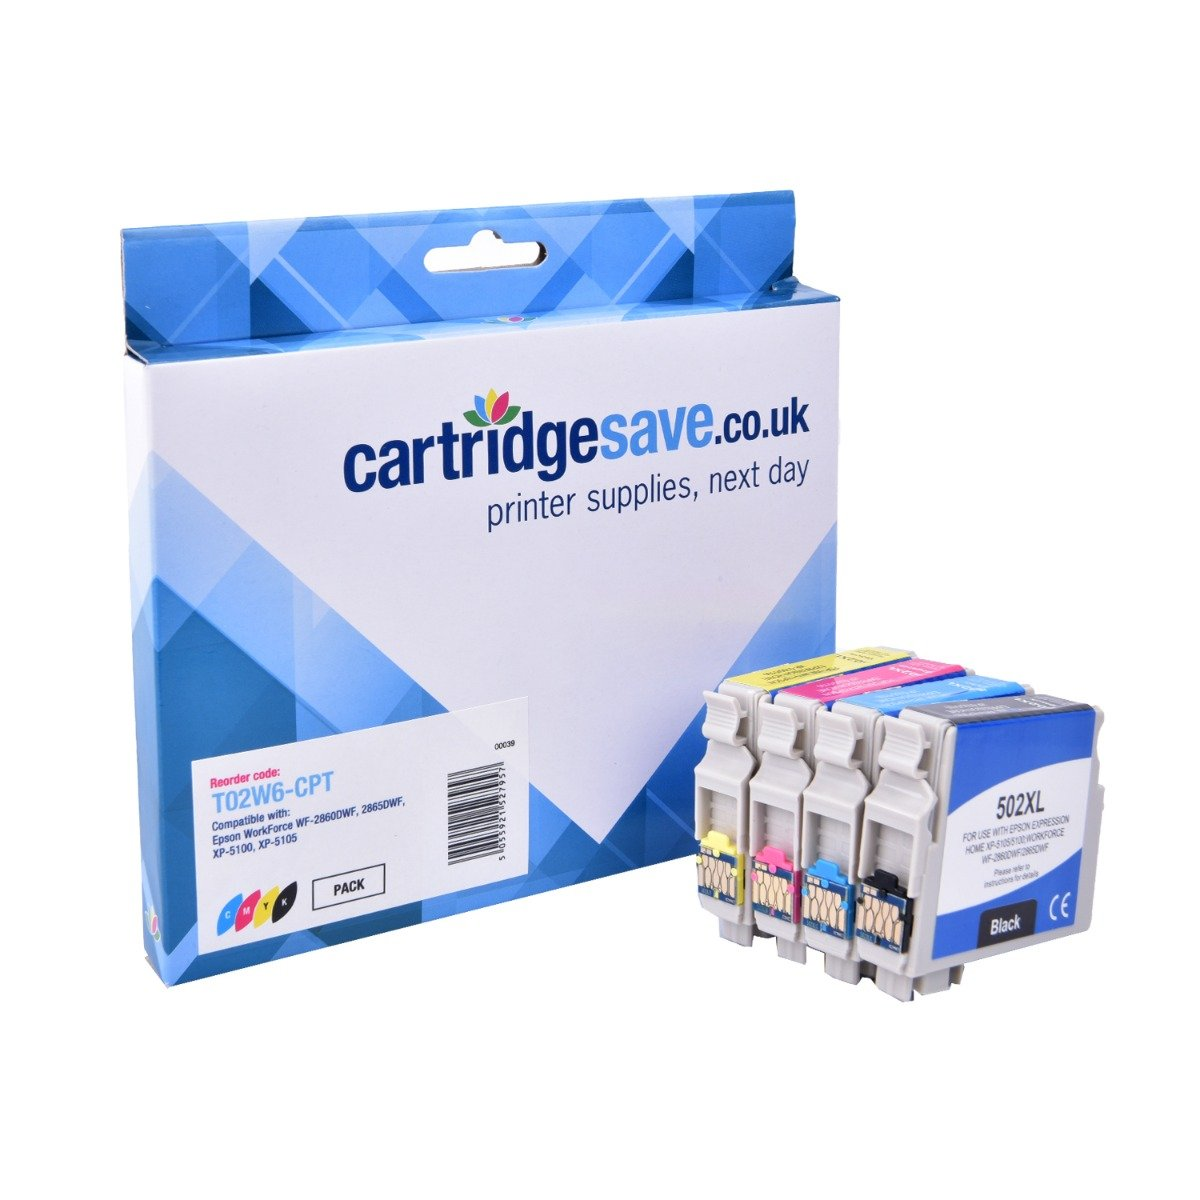 Compatible High Capacity 4 Colour Epson 502XL Ink Cartridge Multipack - (Replaces Epson T02W6 Inkjet Printer Cartridges)